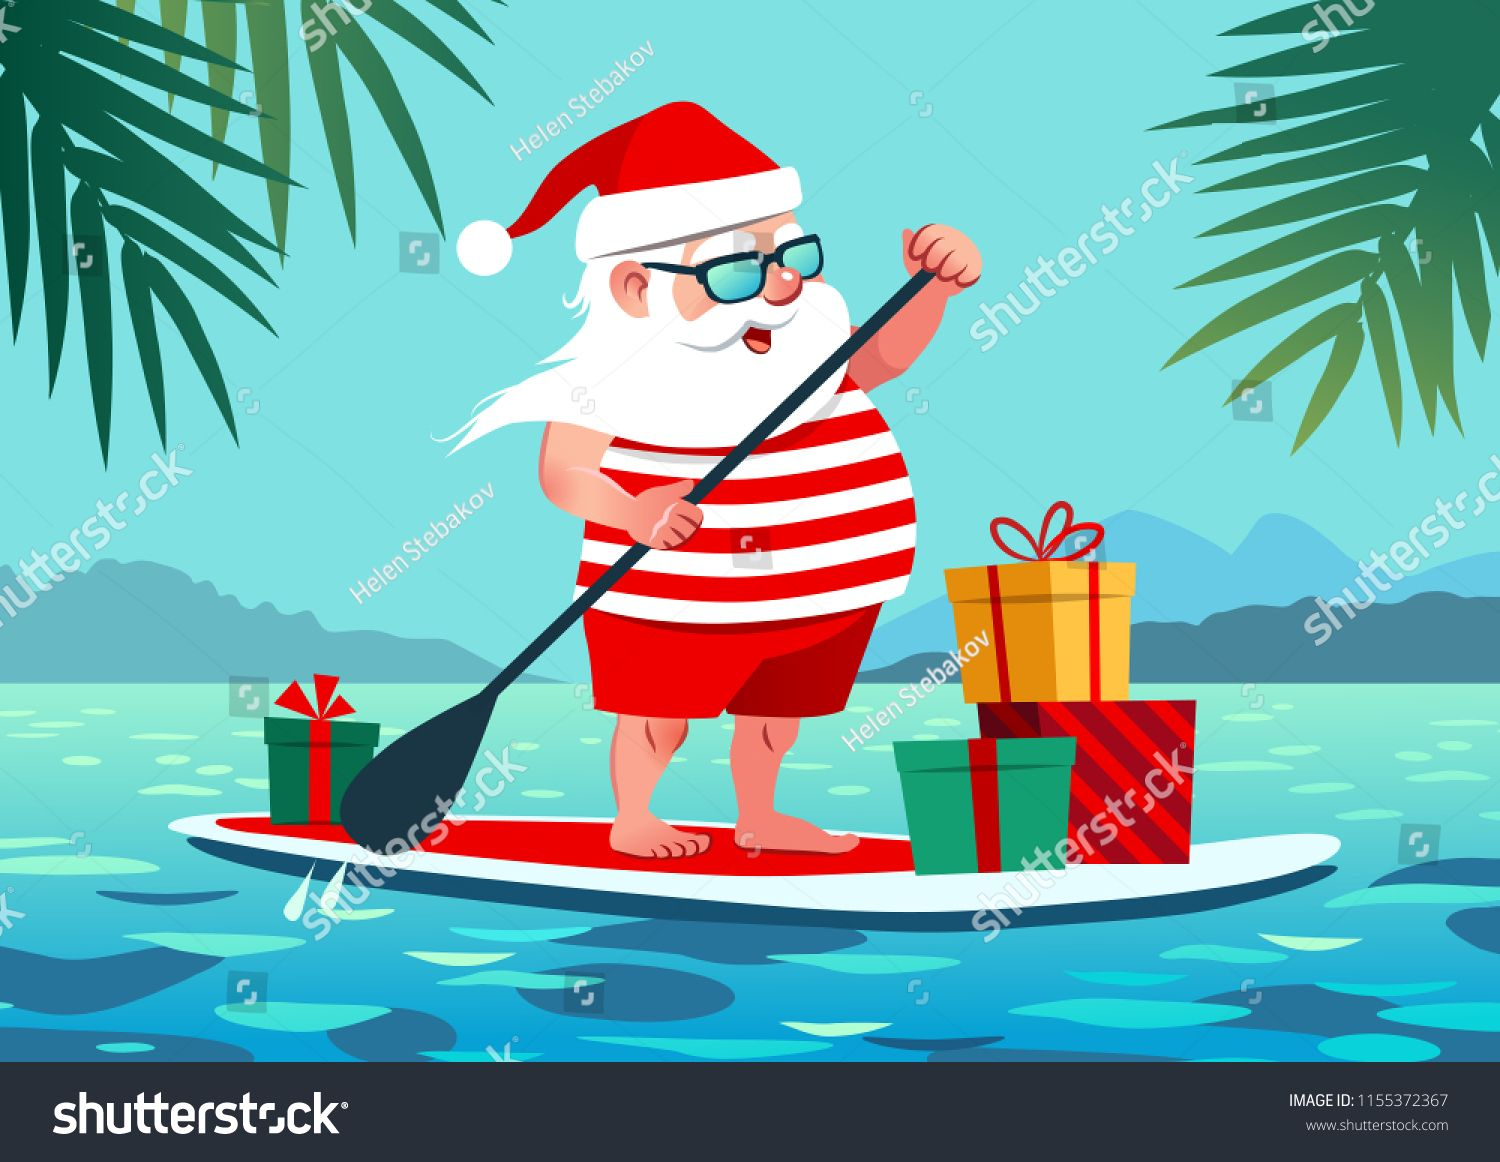 Christmas In July Royalty Free Images.Cute Santa Claus On Paddle Board With Gifts Against Tropical